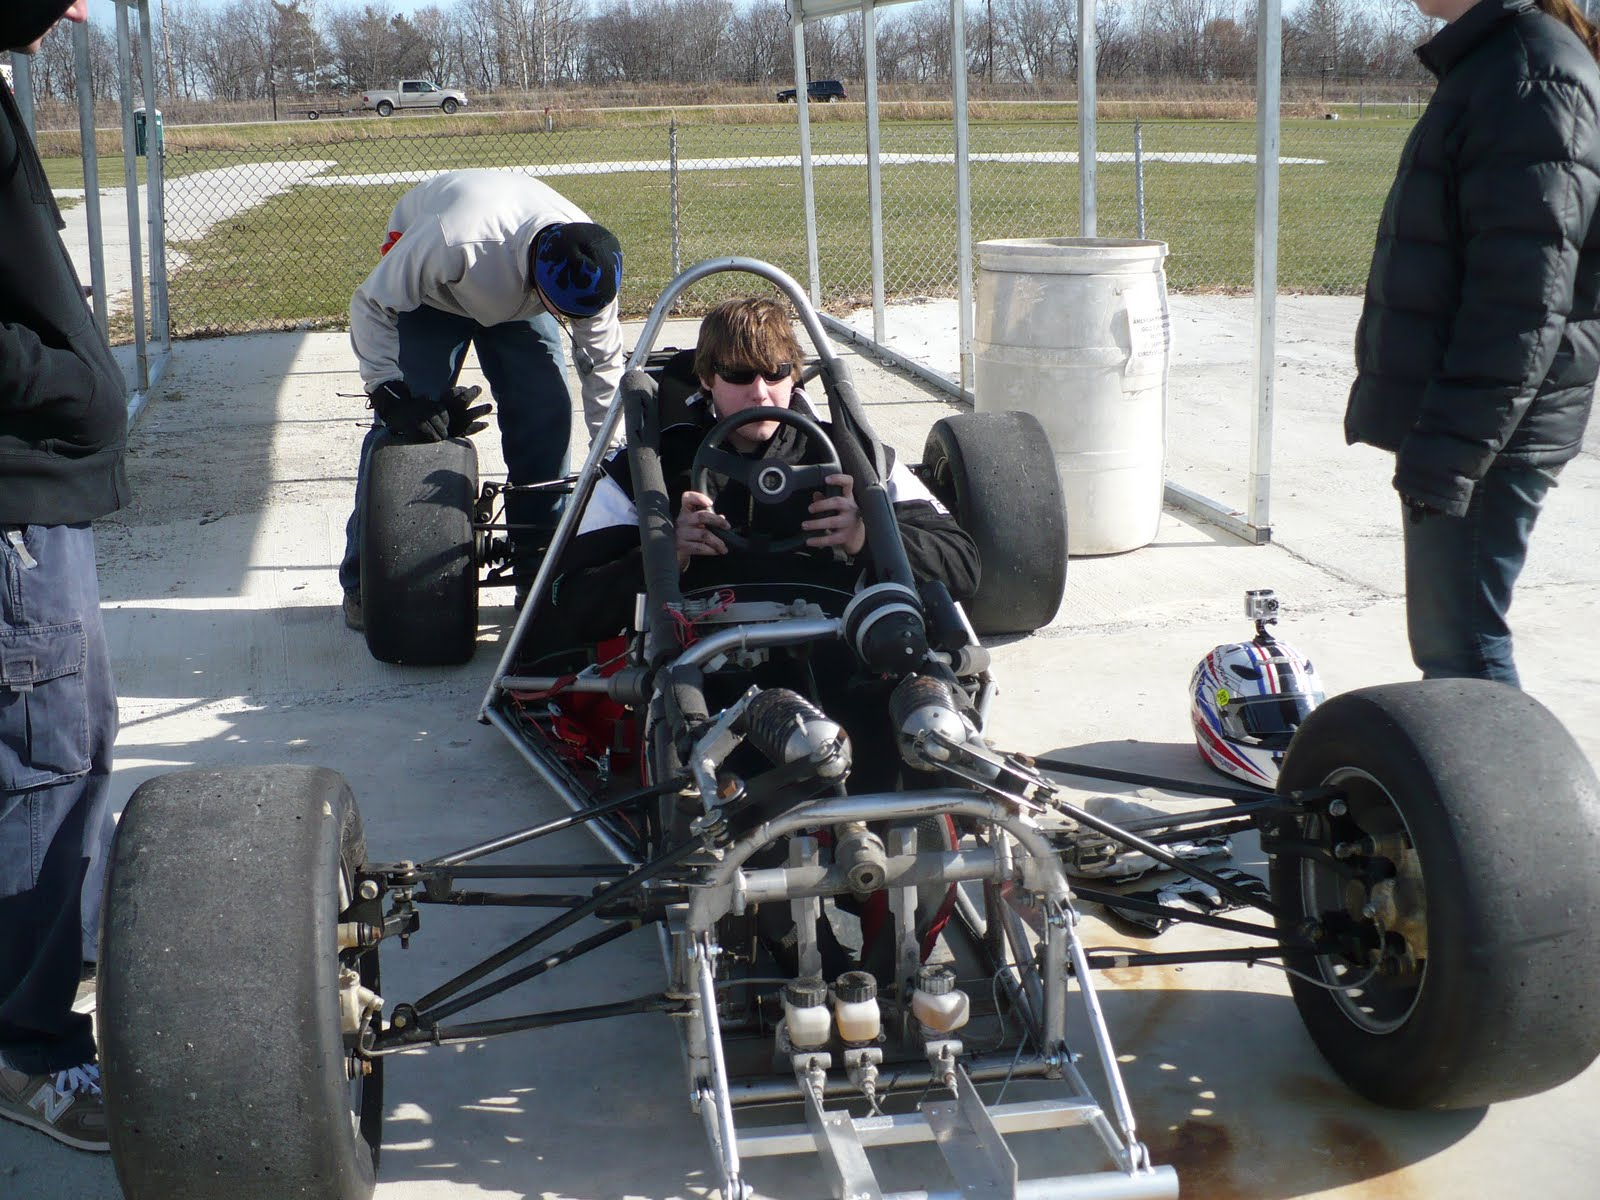 I Have Always Had The Dream And Still Do Of Designing Building An A Mod Racecar This Car Was Supposed To Be Test Bed For My Design